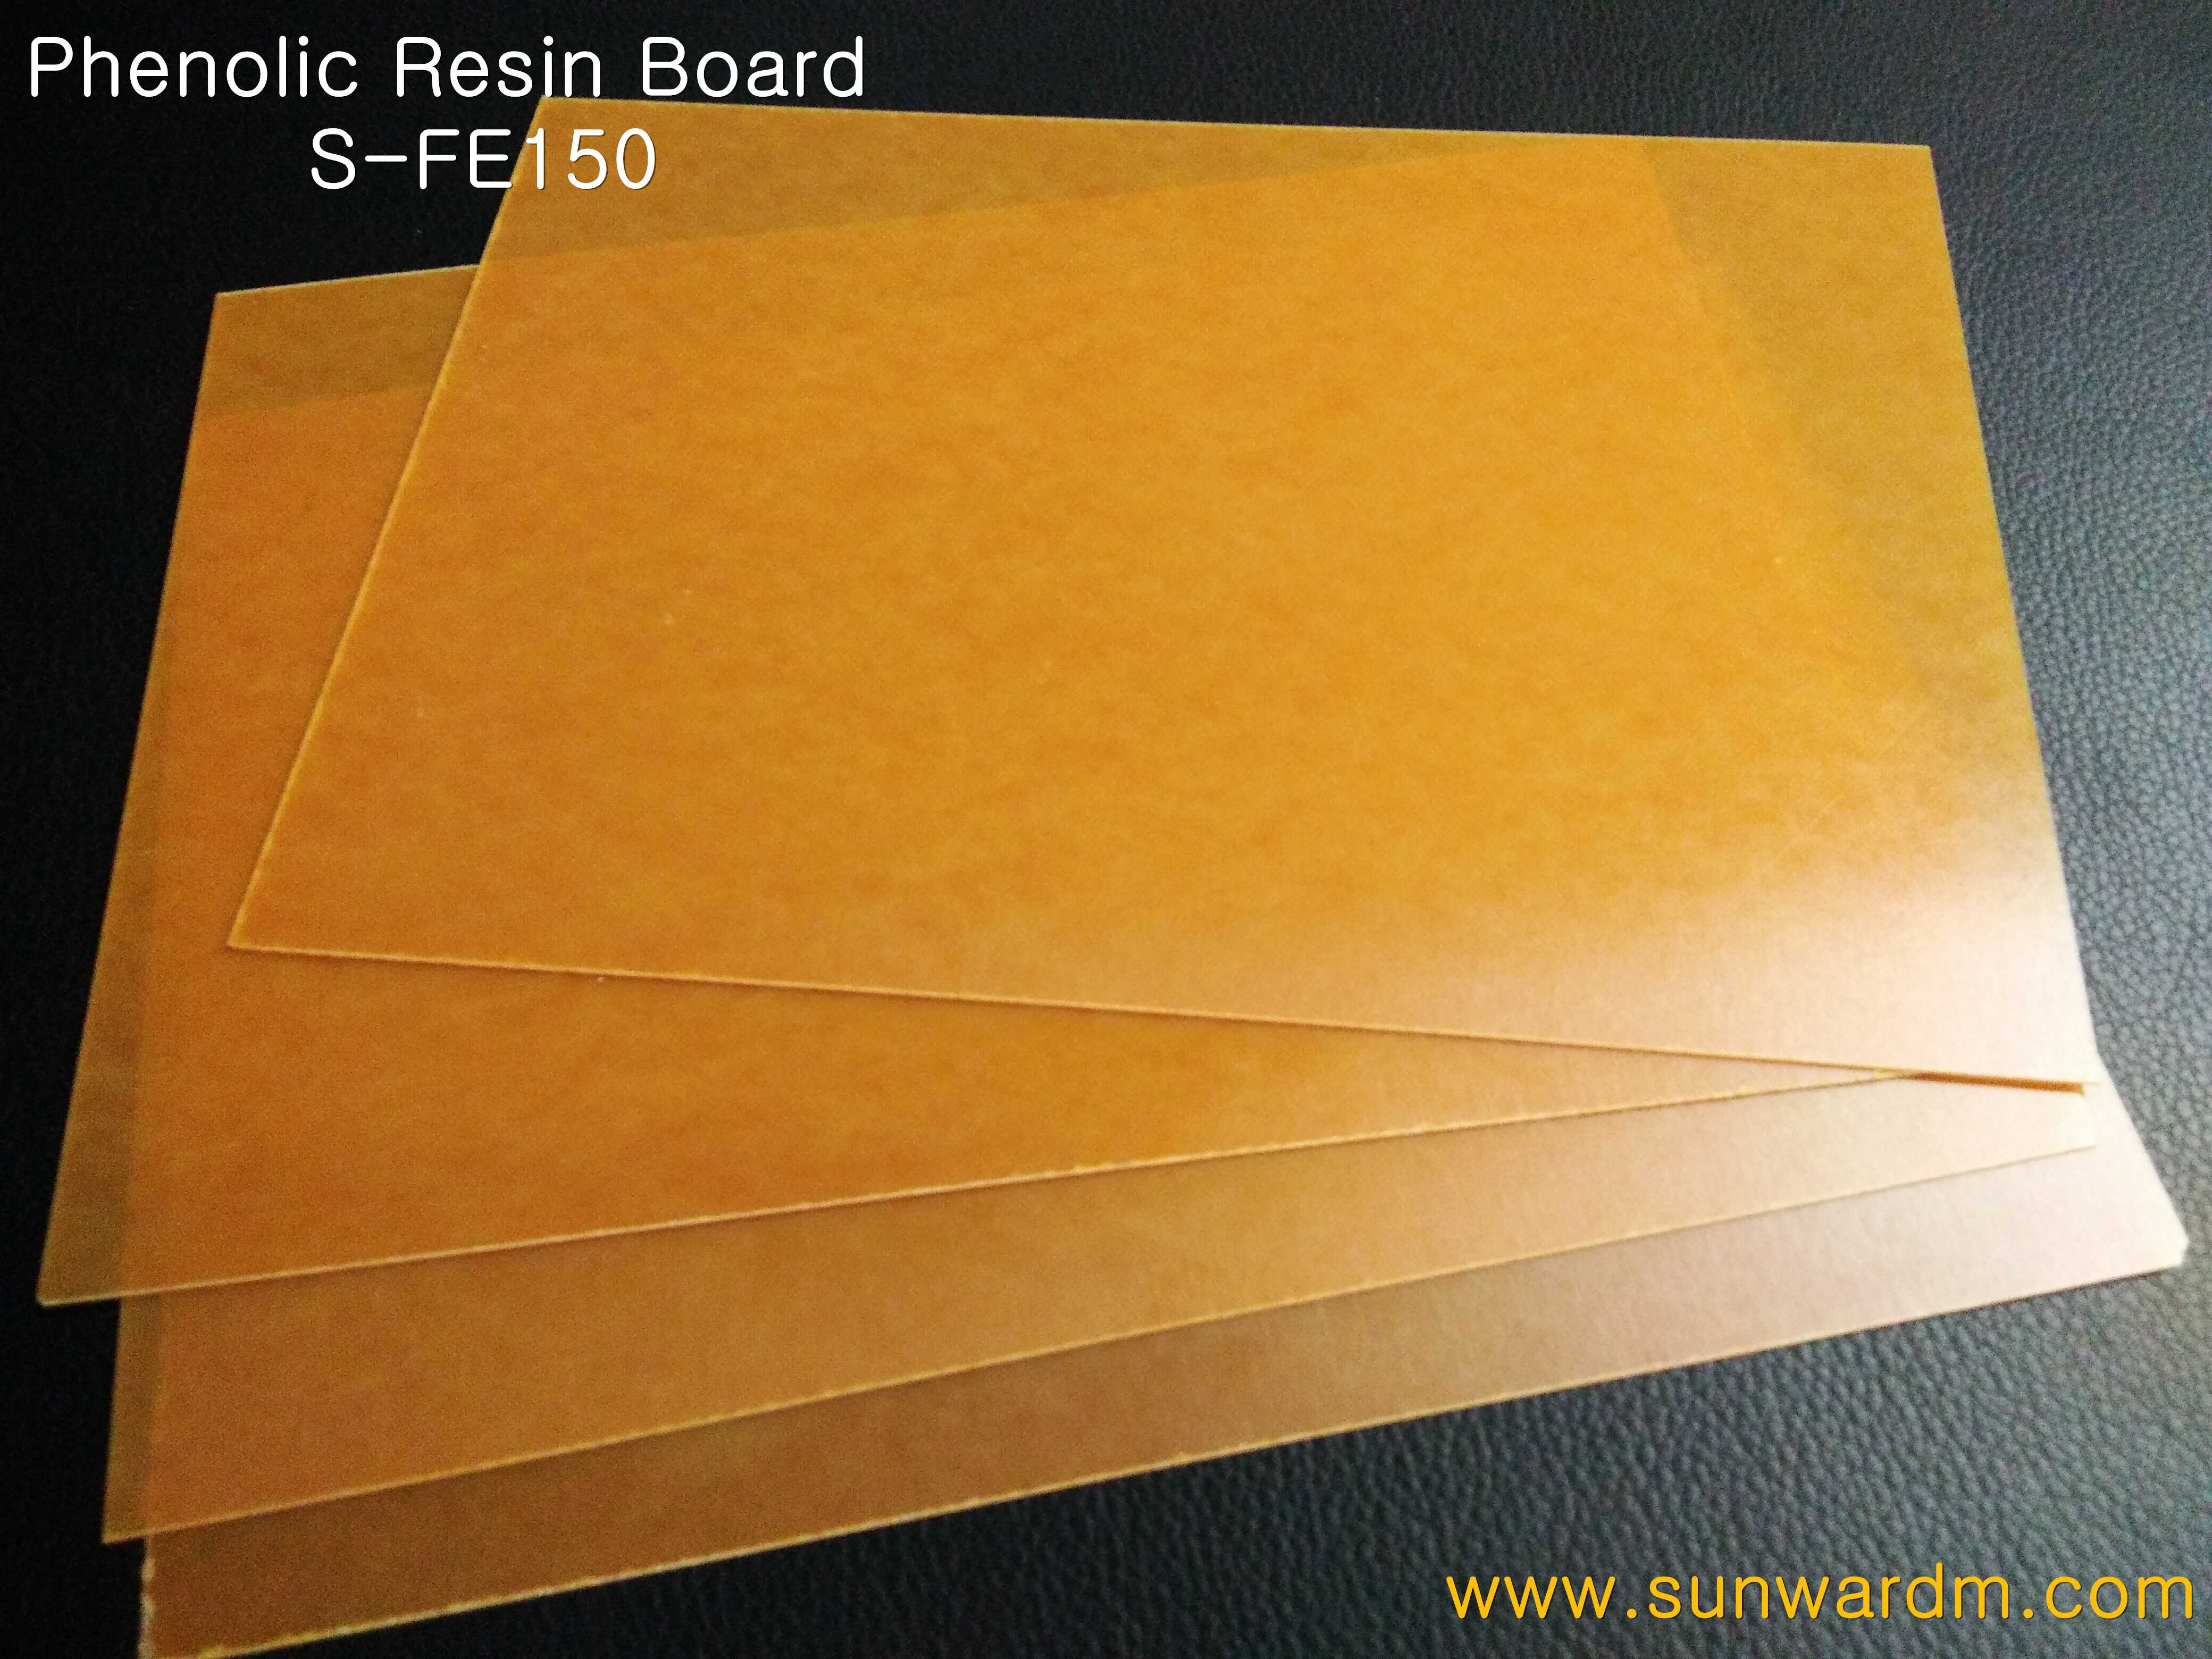 Phenolic Resin Board for FPC Drilling